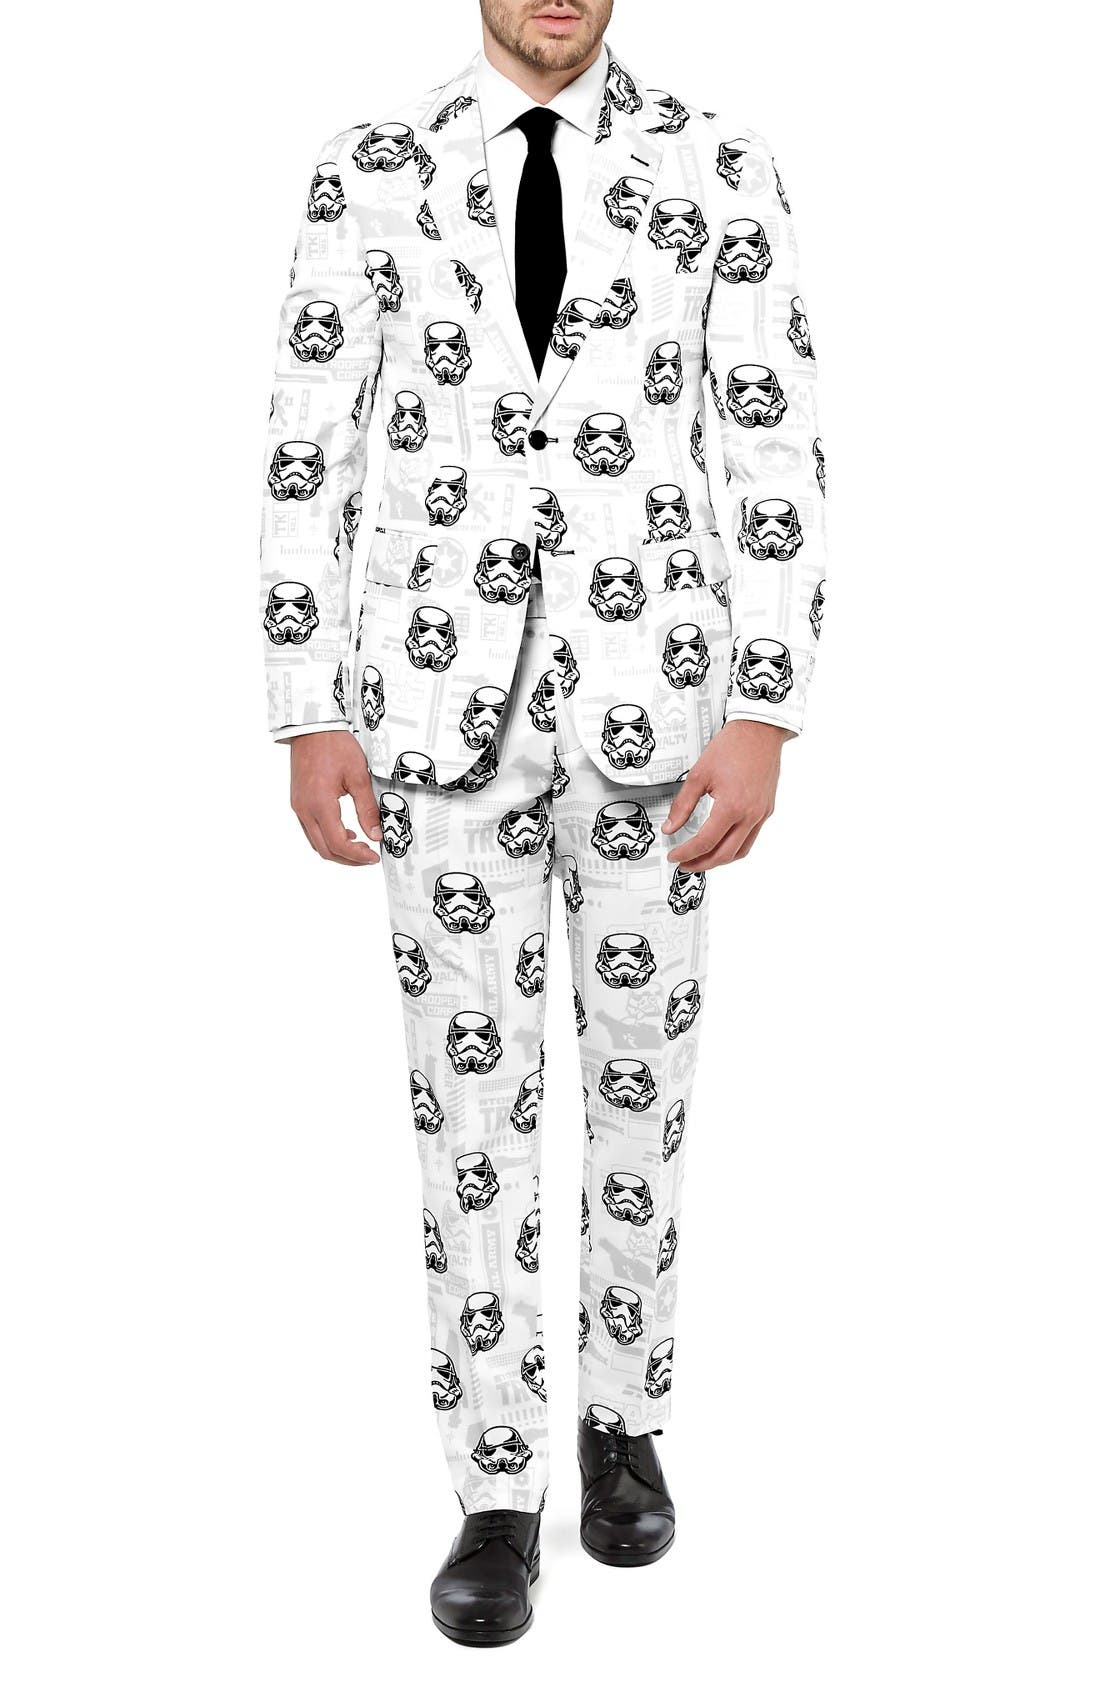 Stormtrooper Trim Fit Two-Piece Suit with Tie,                         Main,                         color, White/ Multi